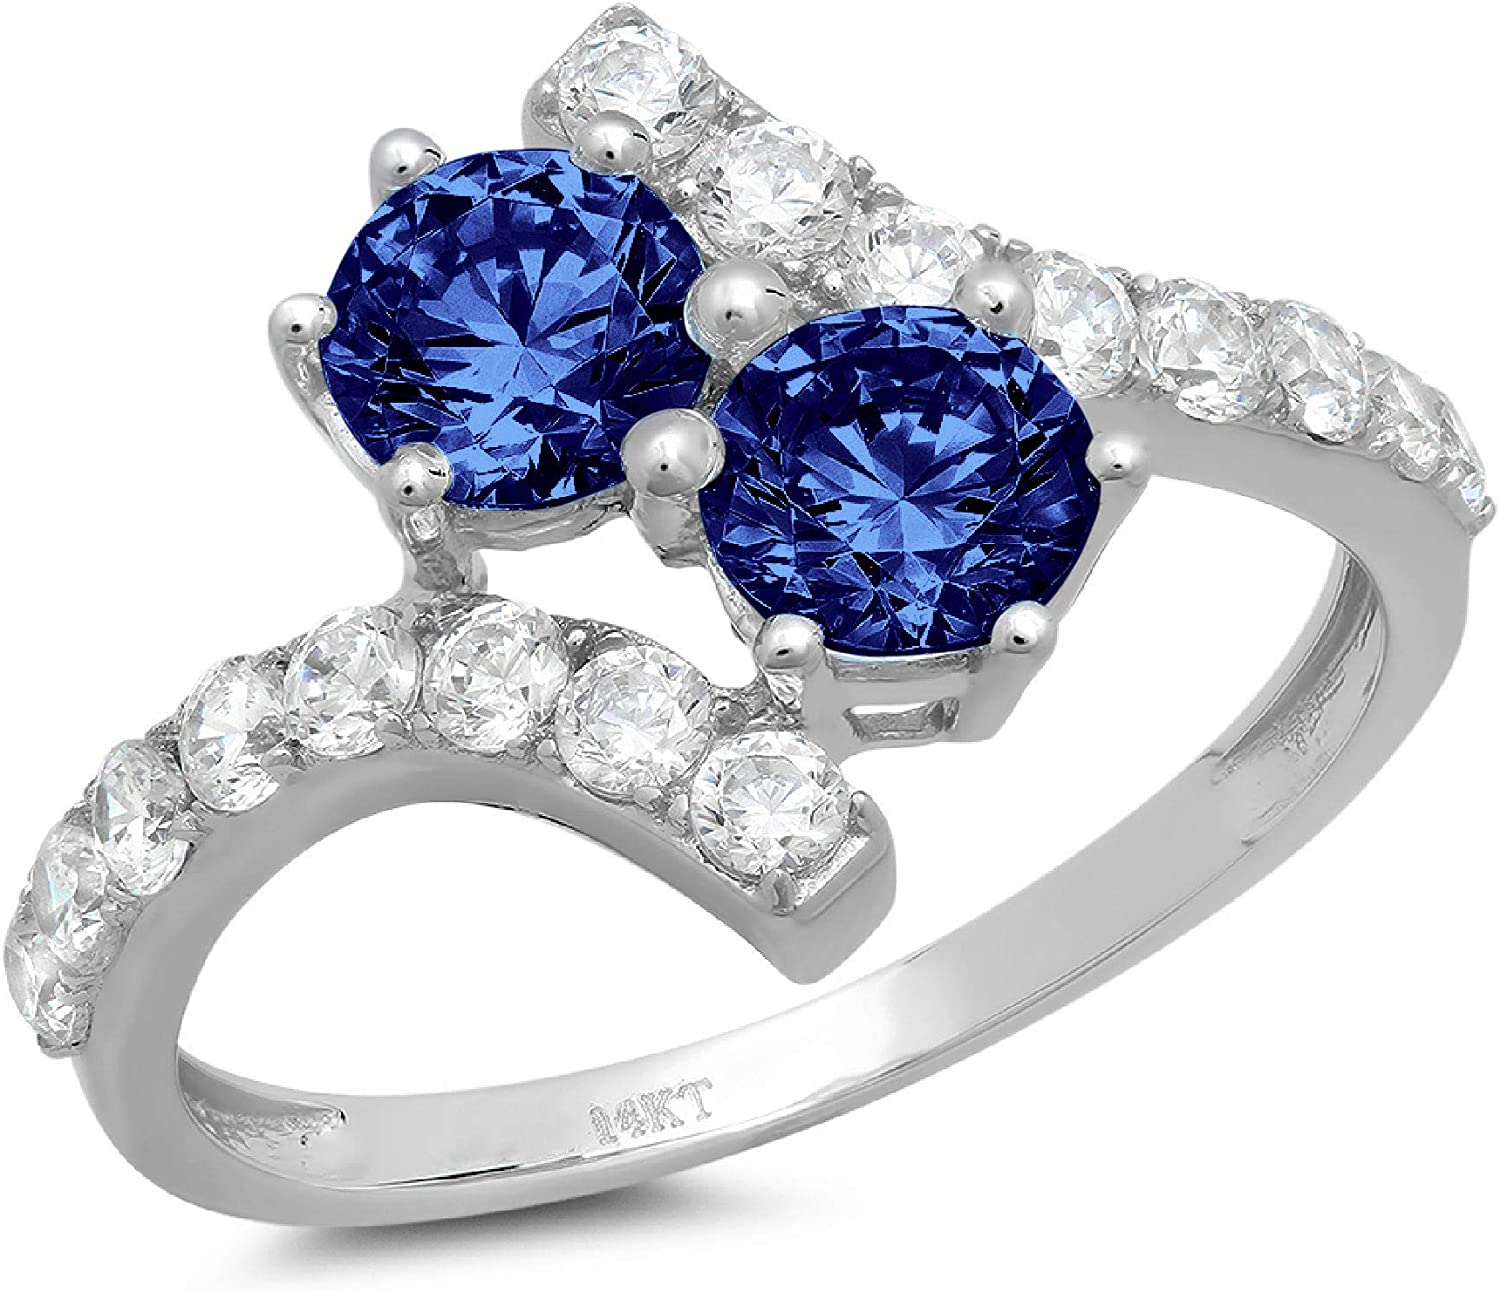 1.98 ct Round Cut 2 stone love Solitaire Genuine Flawless Simulated Tanzanite Gemstone Engagement Promise Statement Anniversary Bridal Wedding Accent Ring Solid 18K White Gold